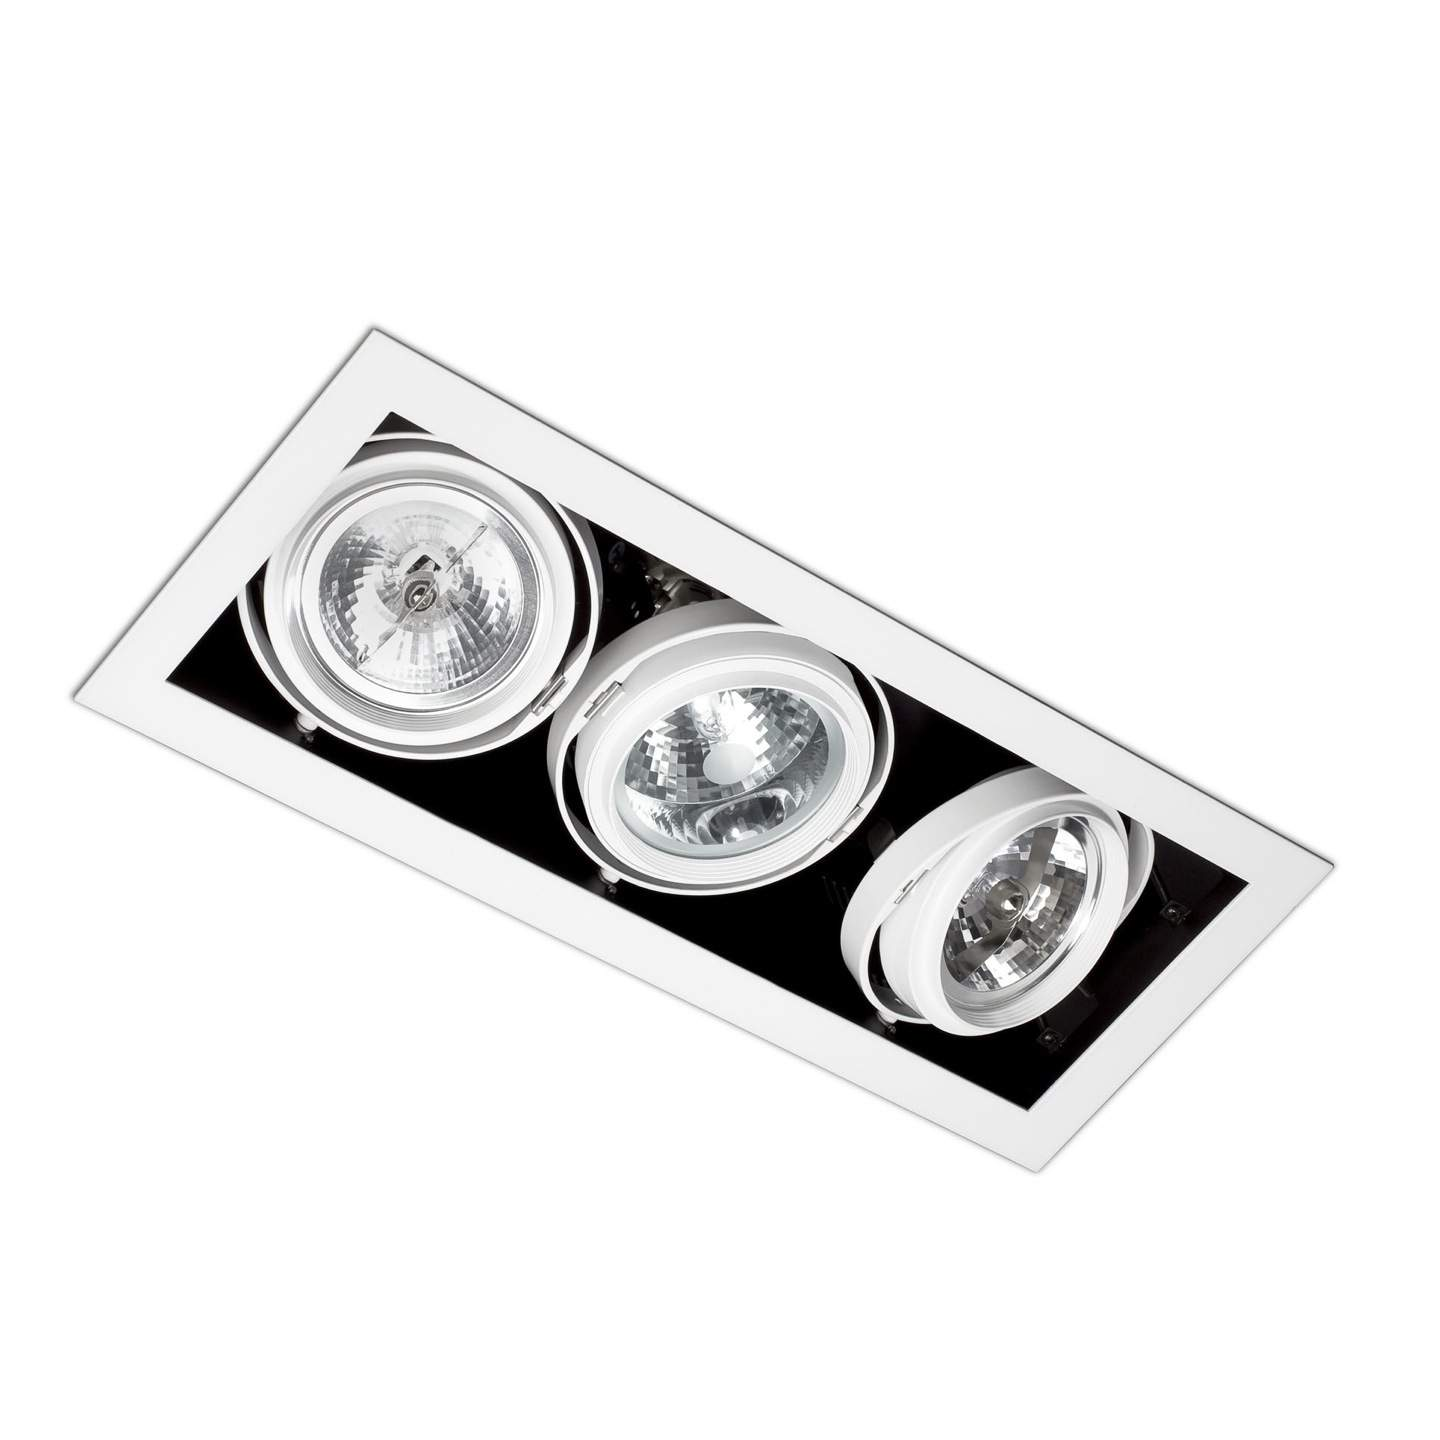 Morris Recessed Ceiling (body without PortaLámpara s) 3xElements white